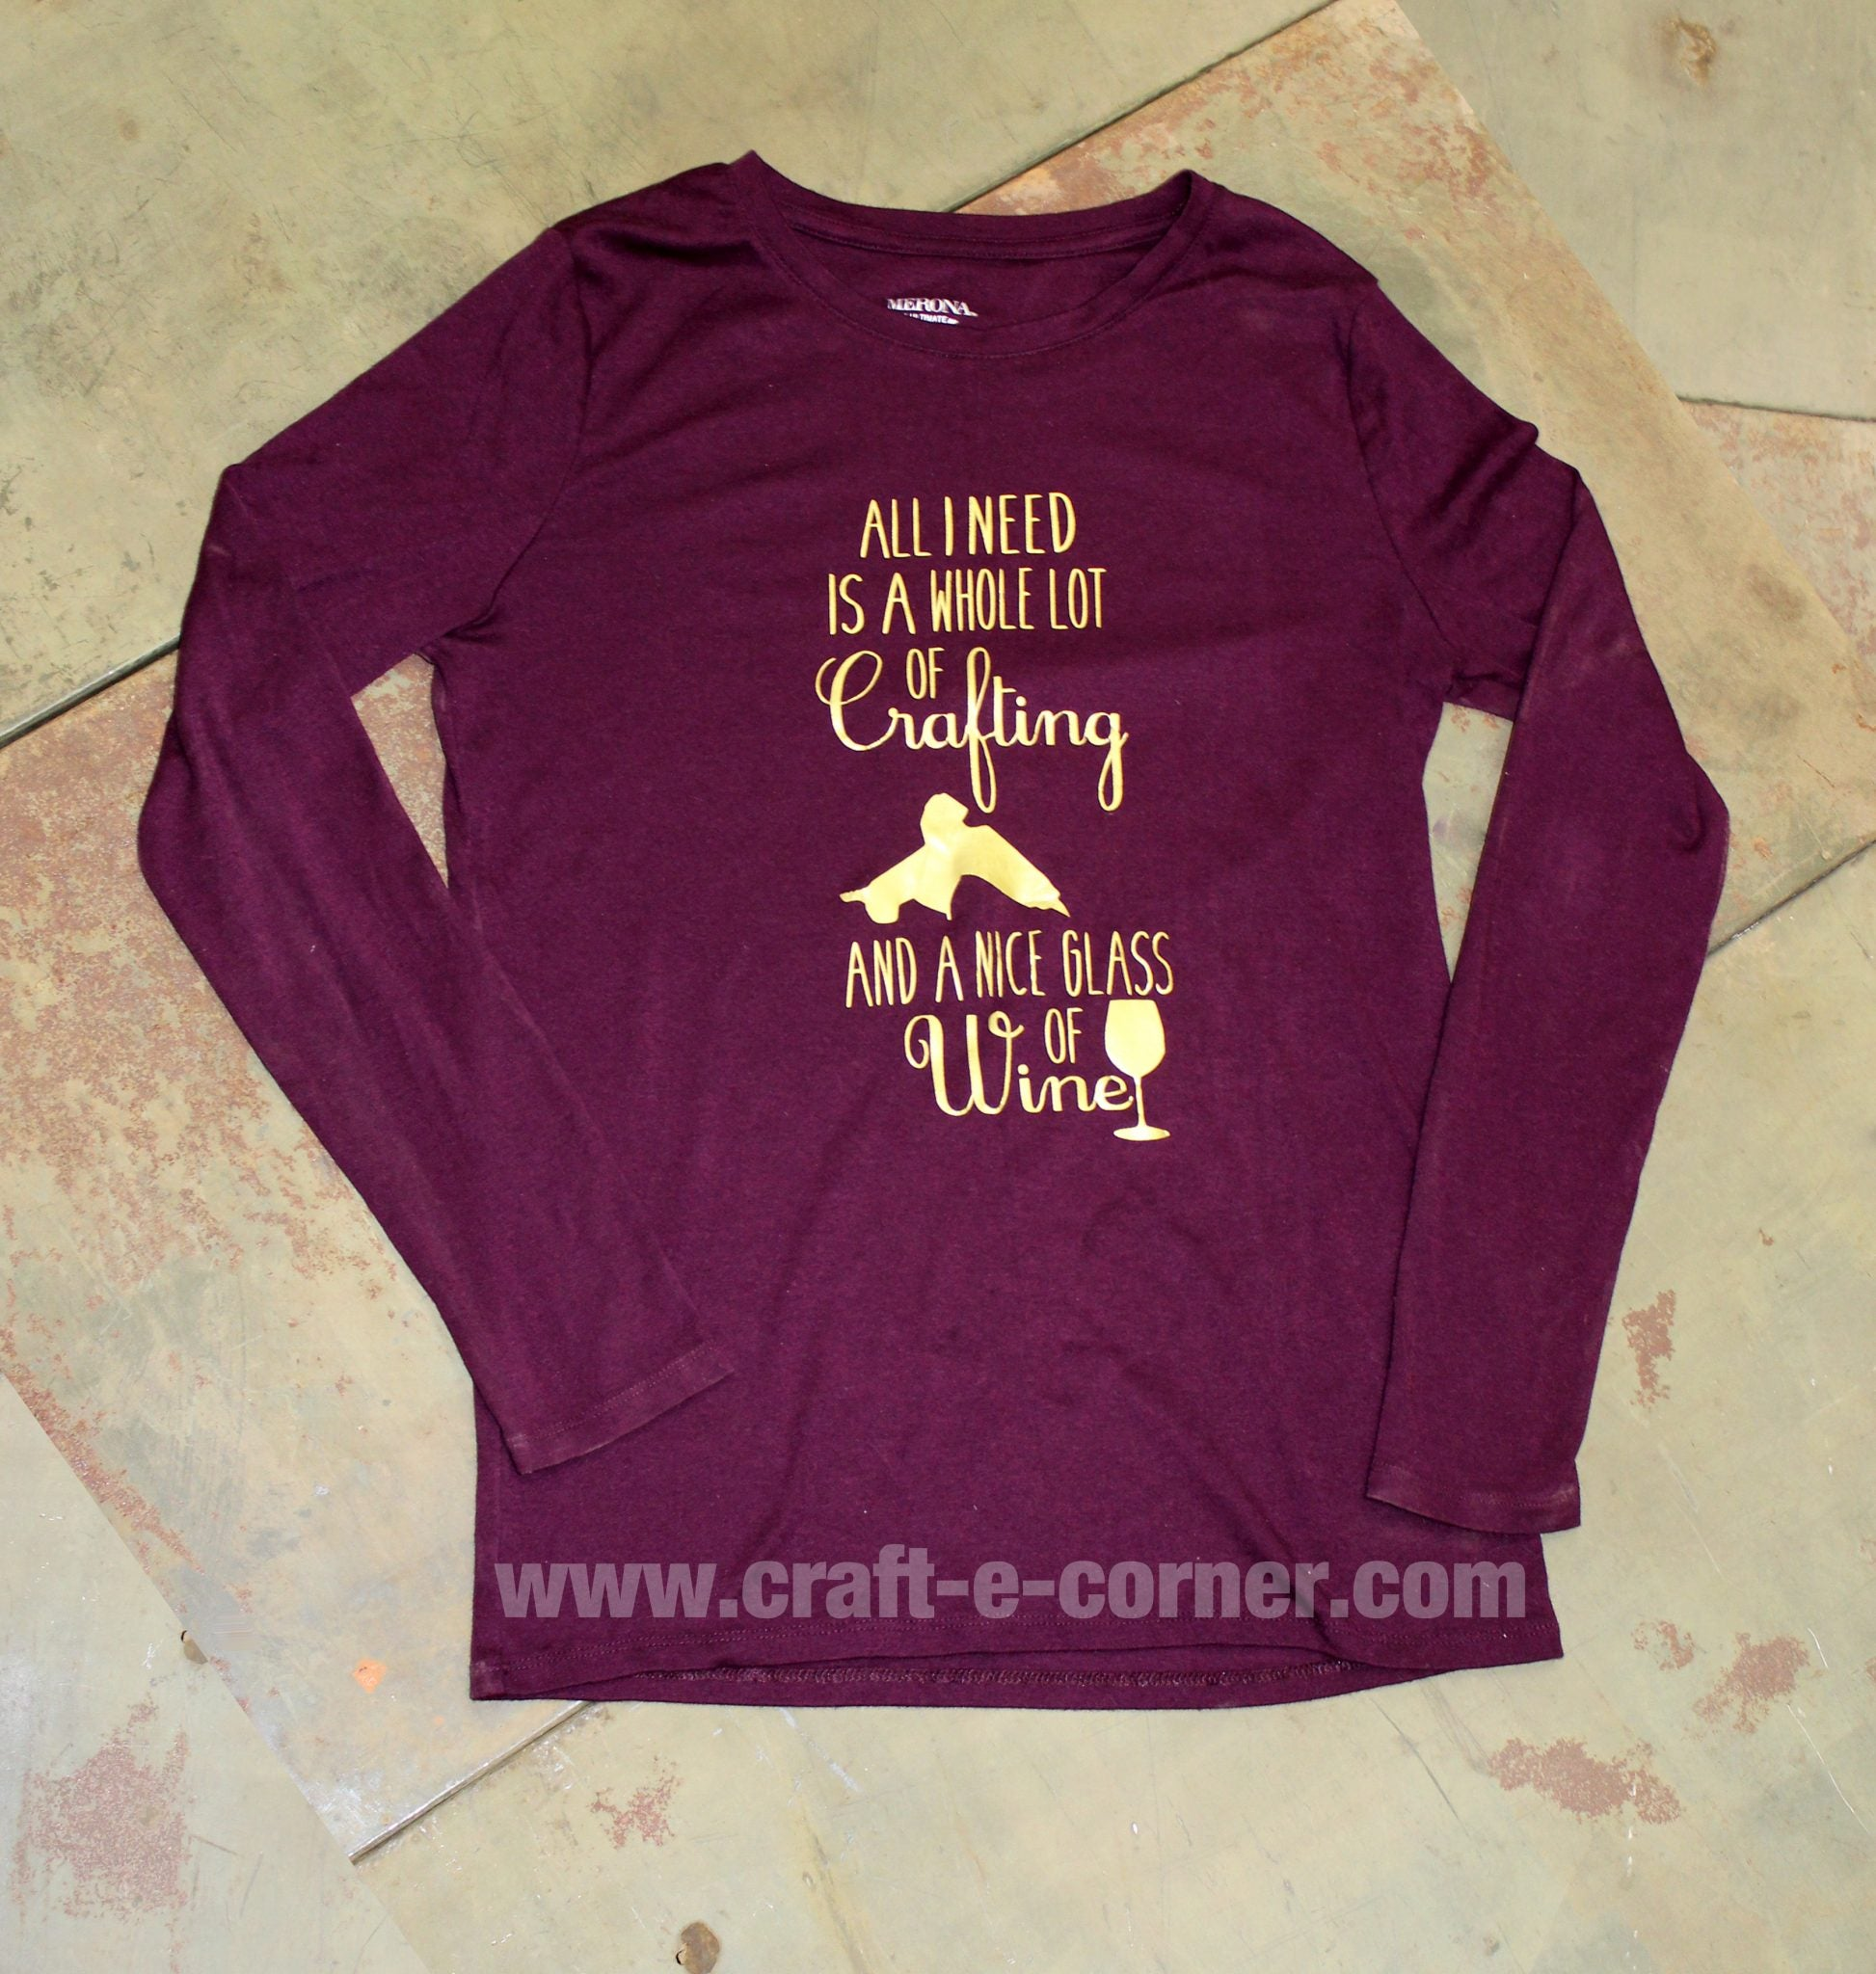 all i need is a whole lot of crafting and a nice glass of wine shirt